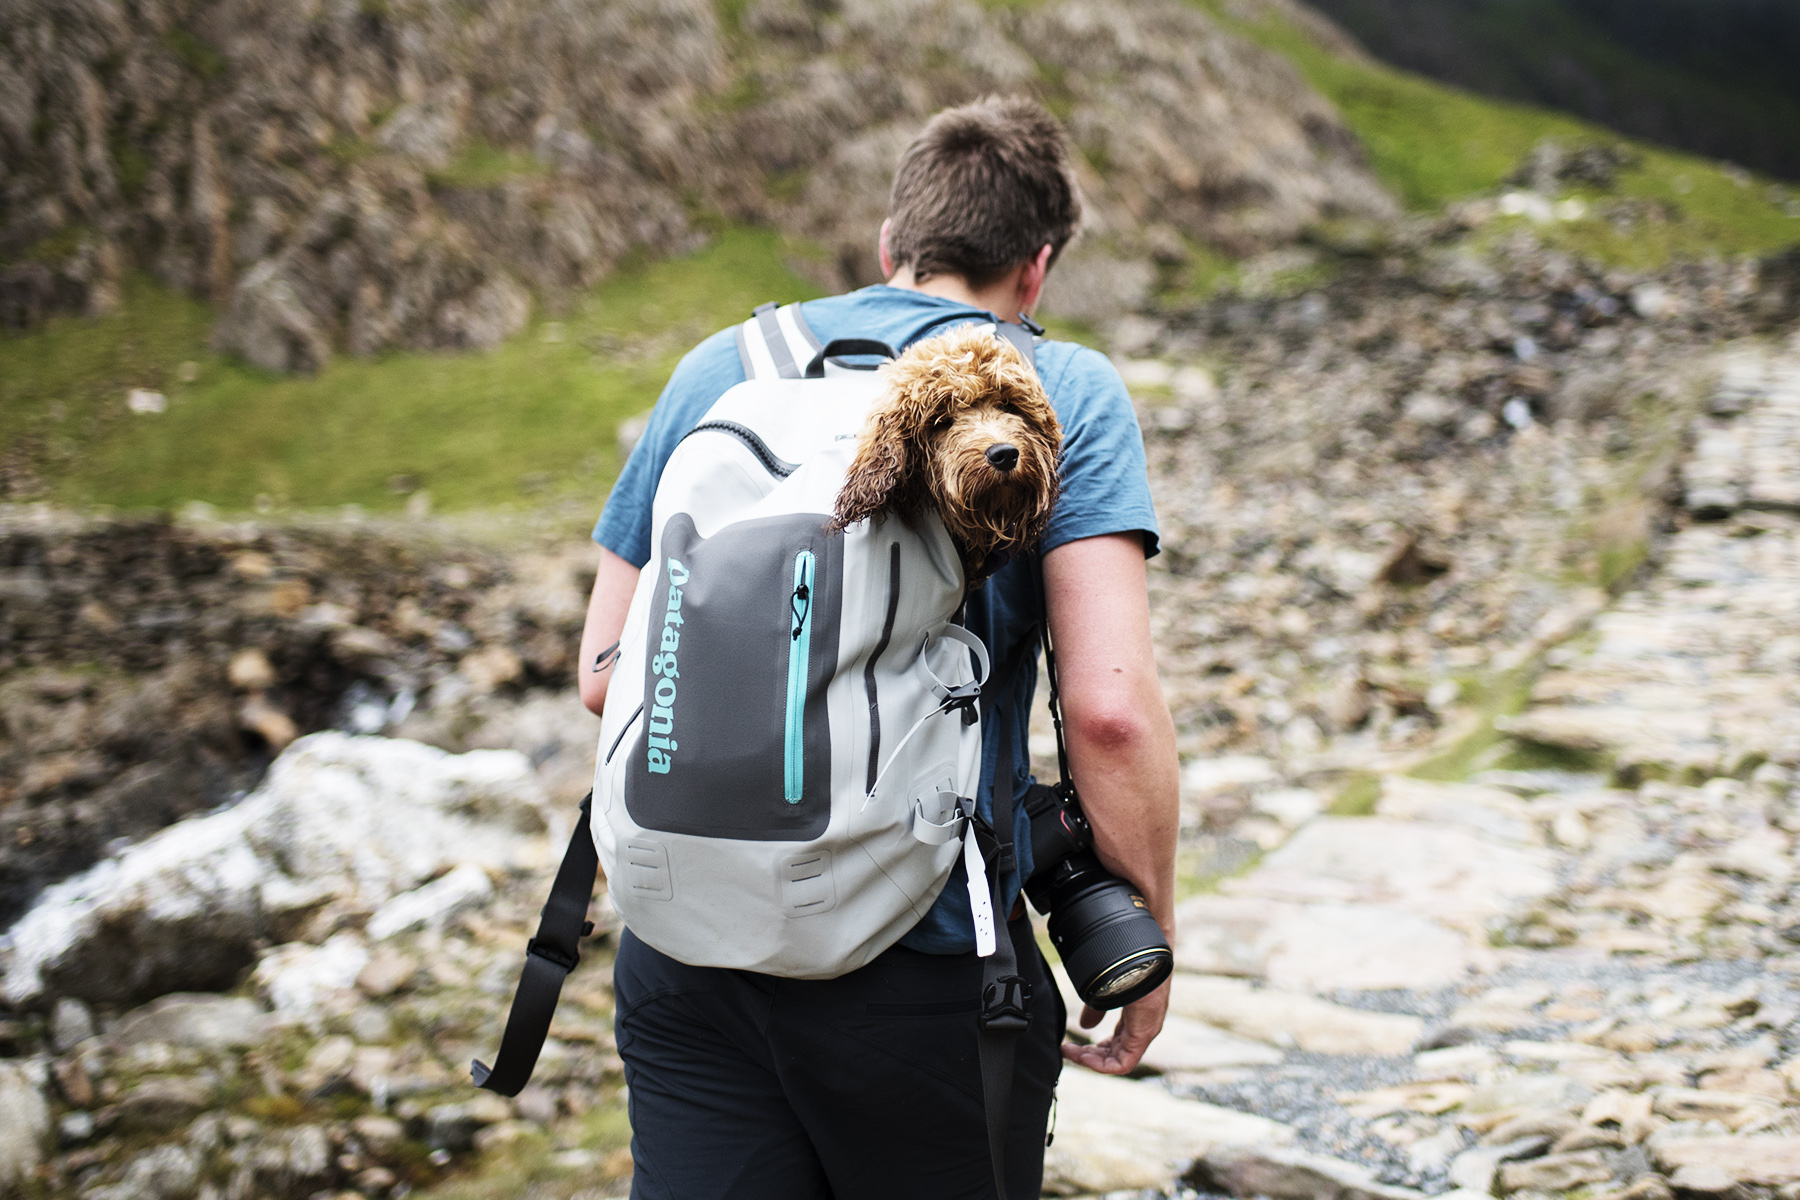 Mable Being Carried in Patagonia Bag | The Cornish Dog